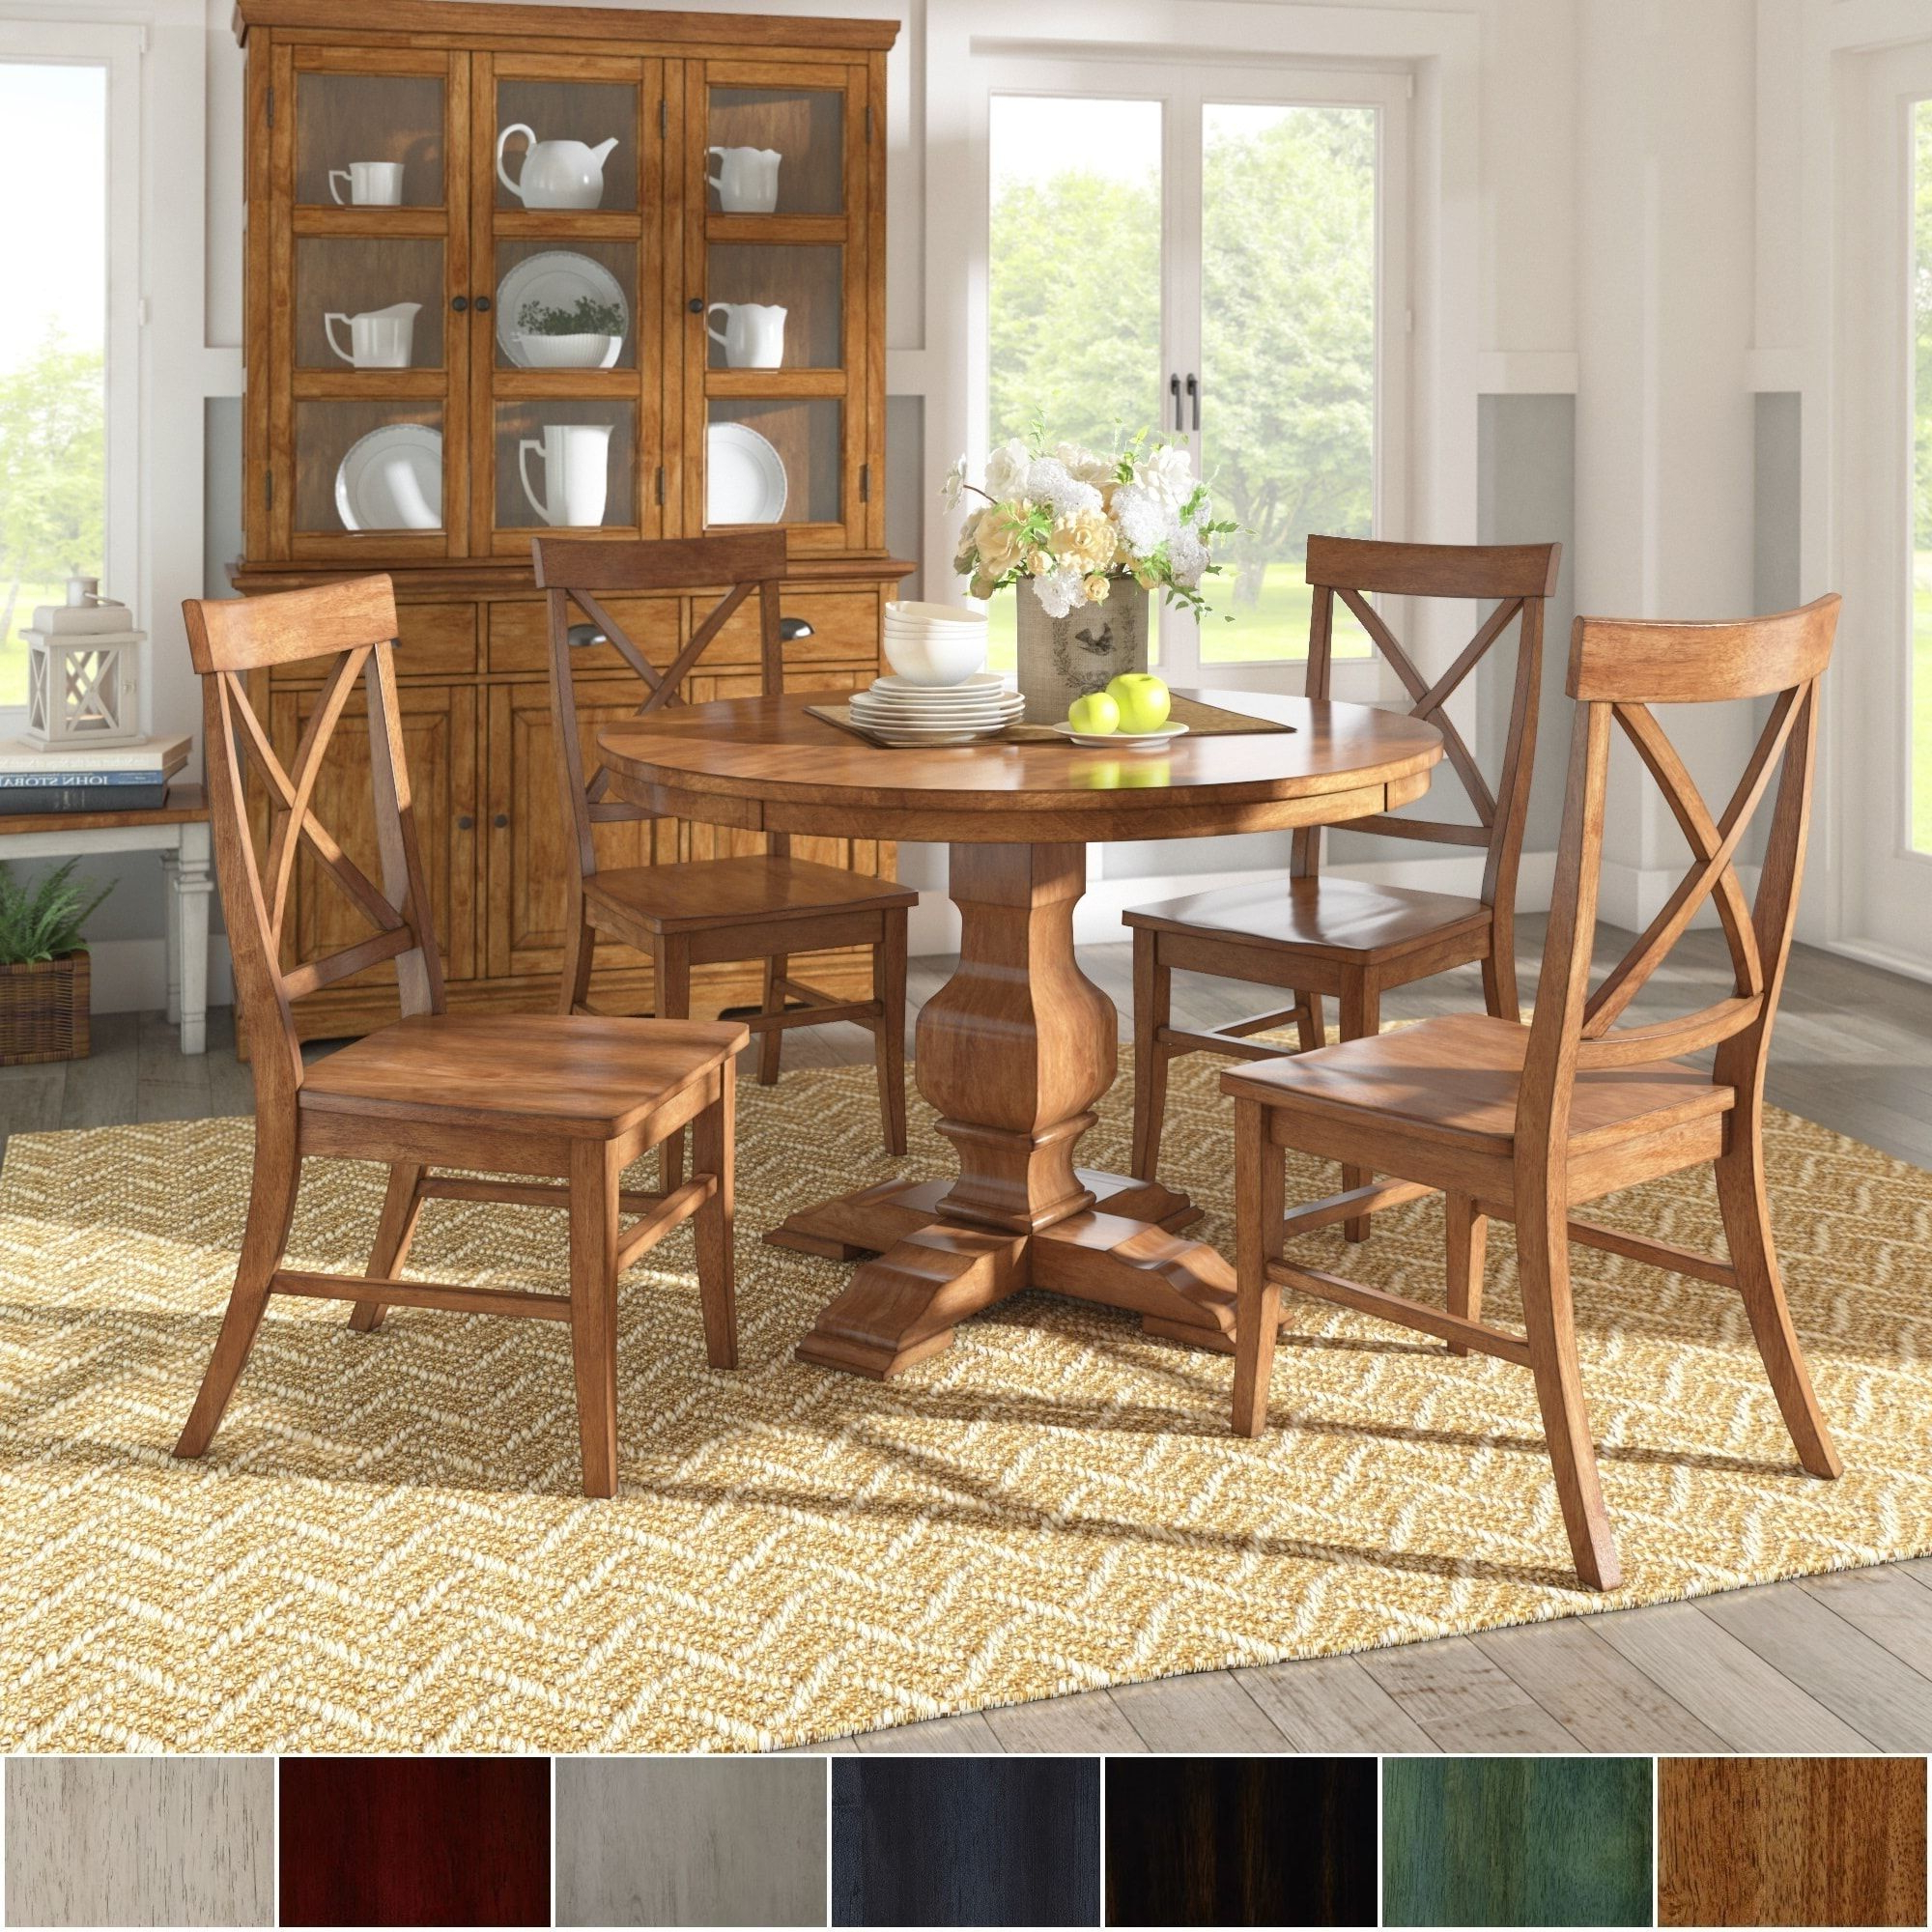 Most Popular Ephraim 5 Piece Dining Sets Intended For Eleanor Oak Finish Wood 5 Piece Round Table X Back Chairs Dining Set (View 9 of 25)